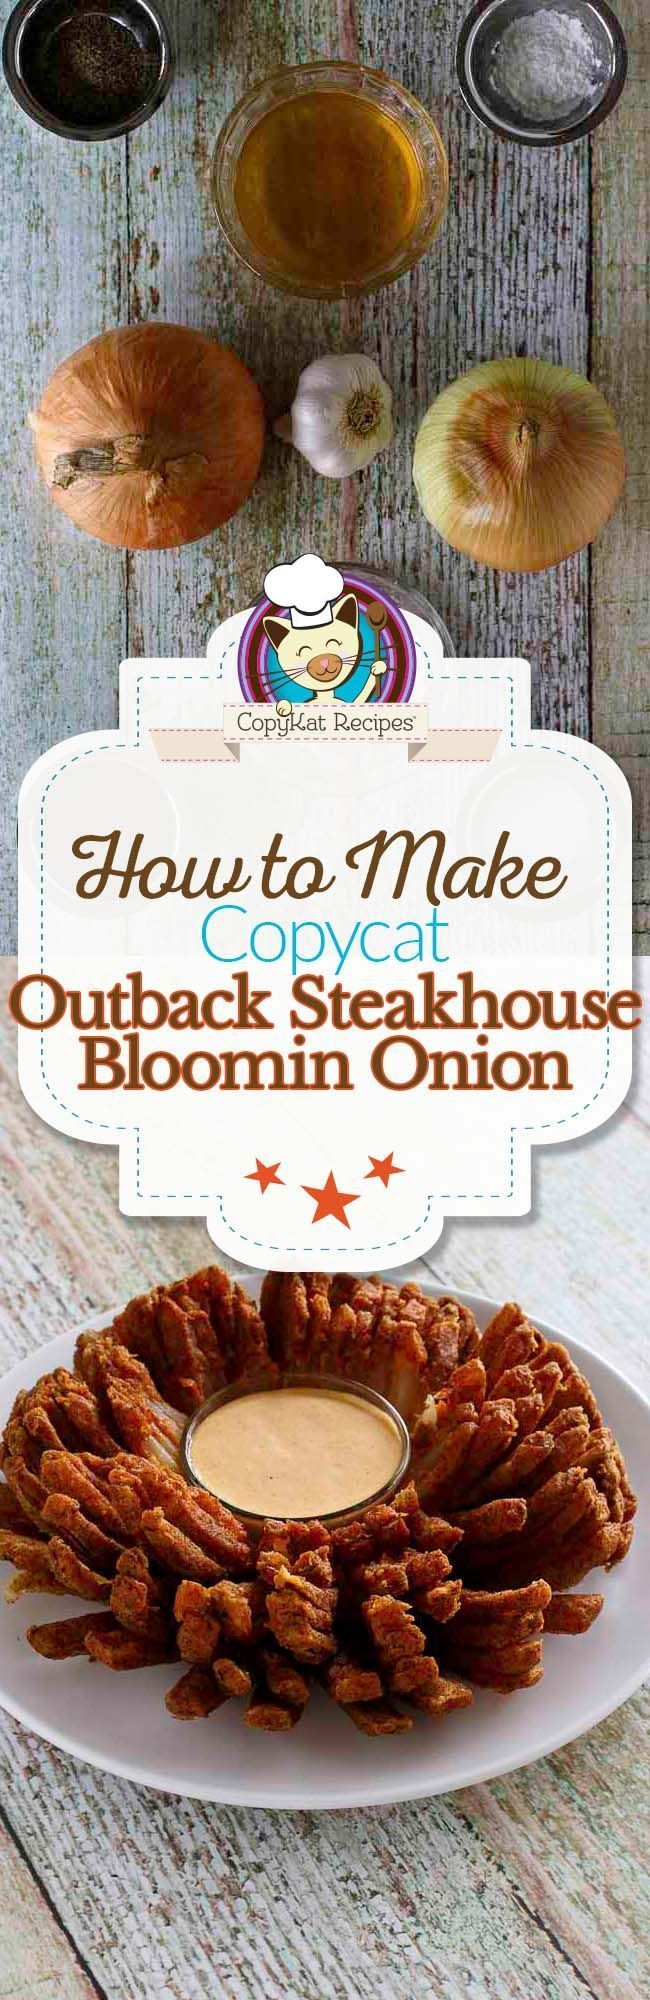 Make your own homemade Outback Steakhouse Bloomin Onion with this copycat recipe.